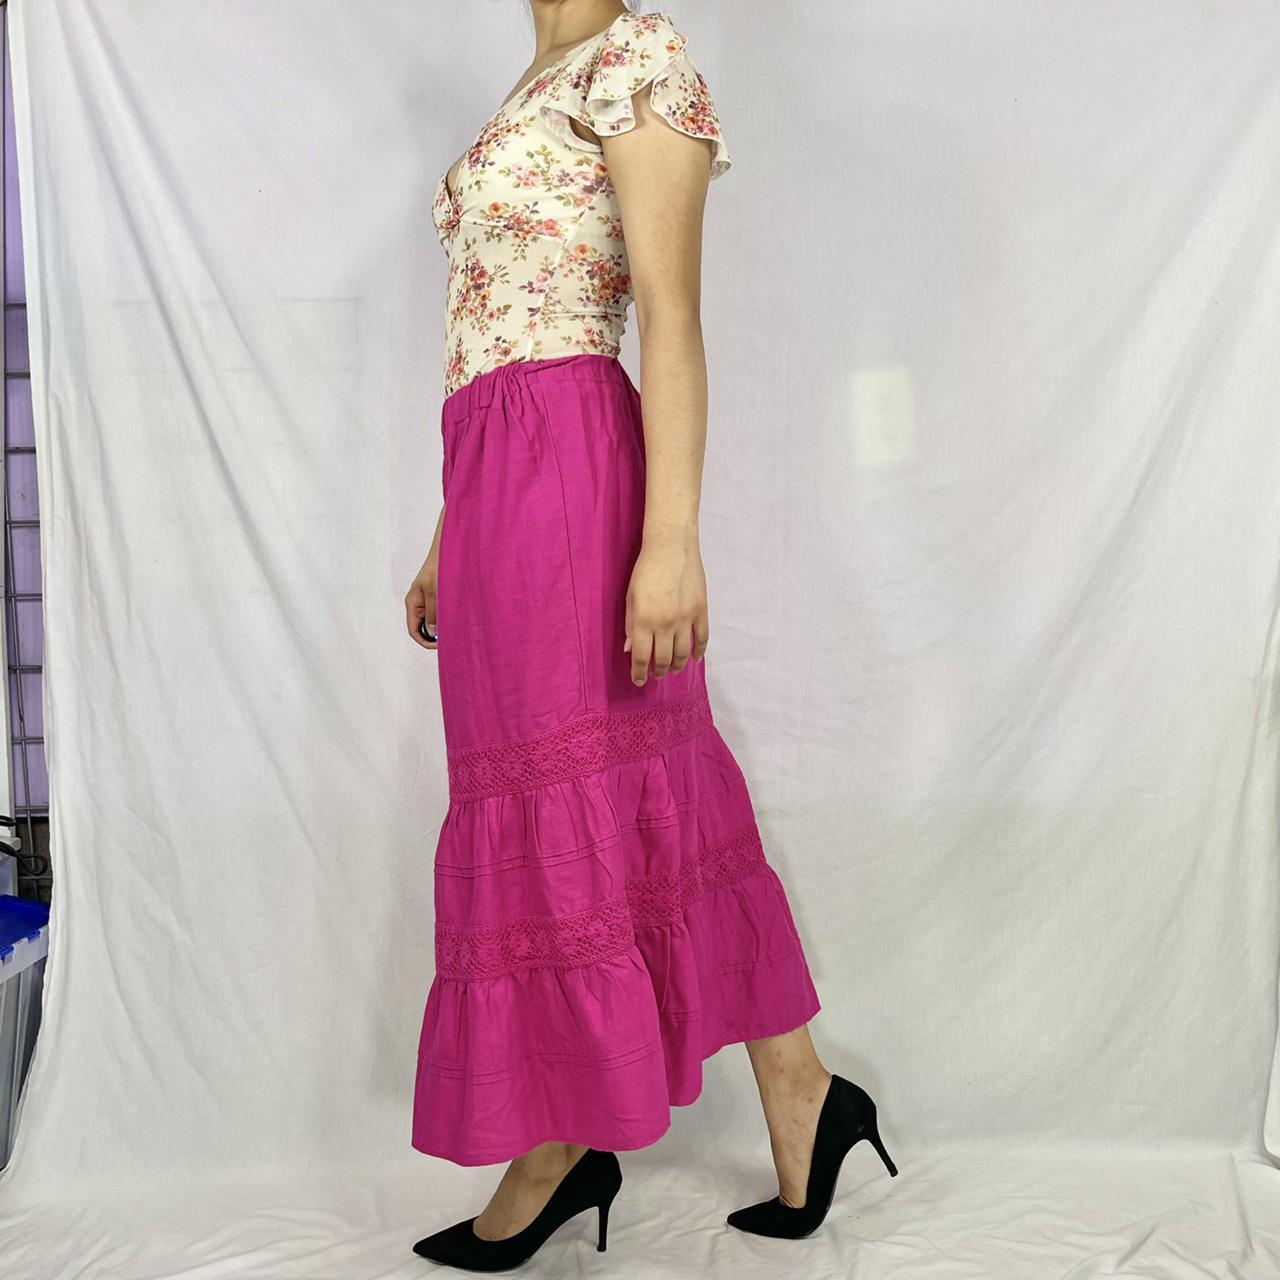 Product Image 1 - Long tiered skirt. This skirt